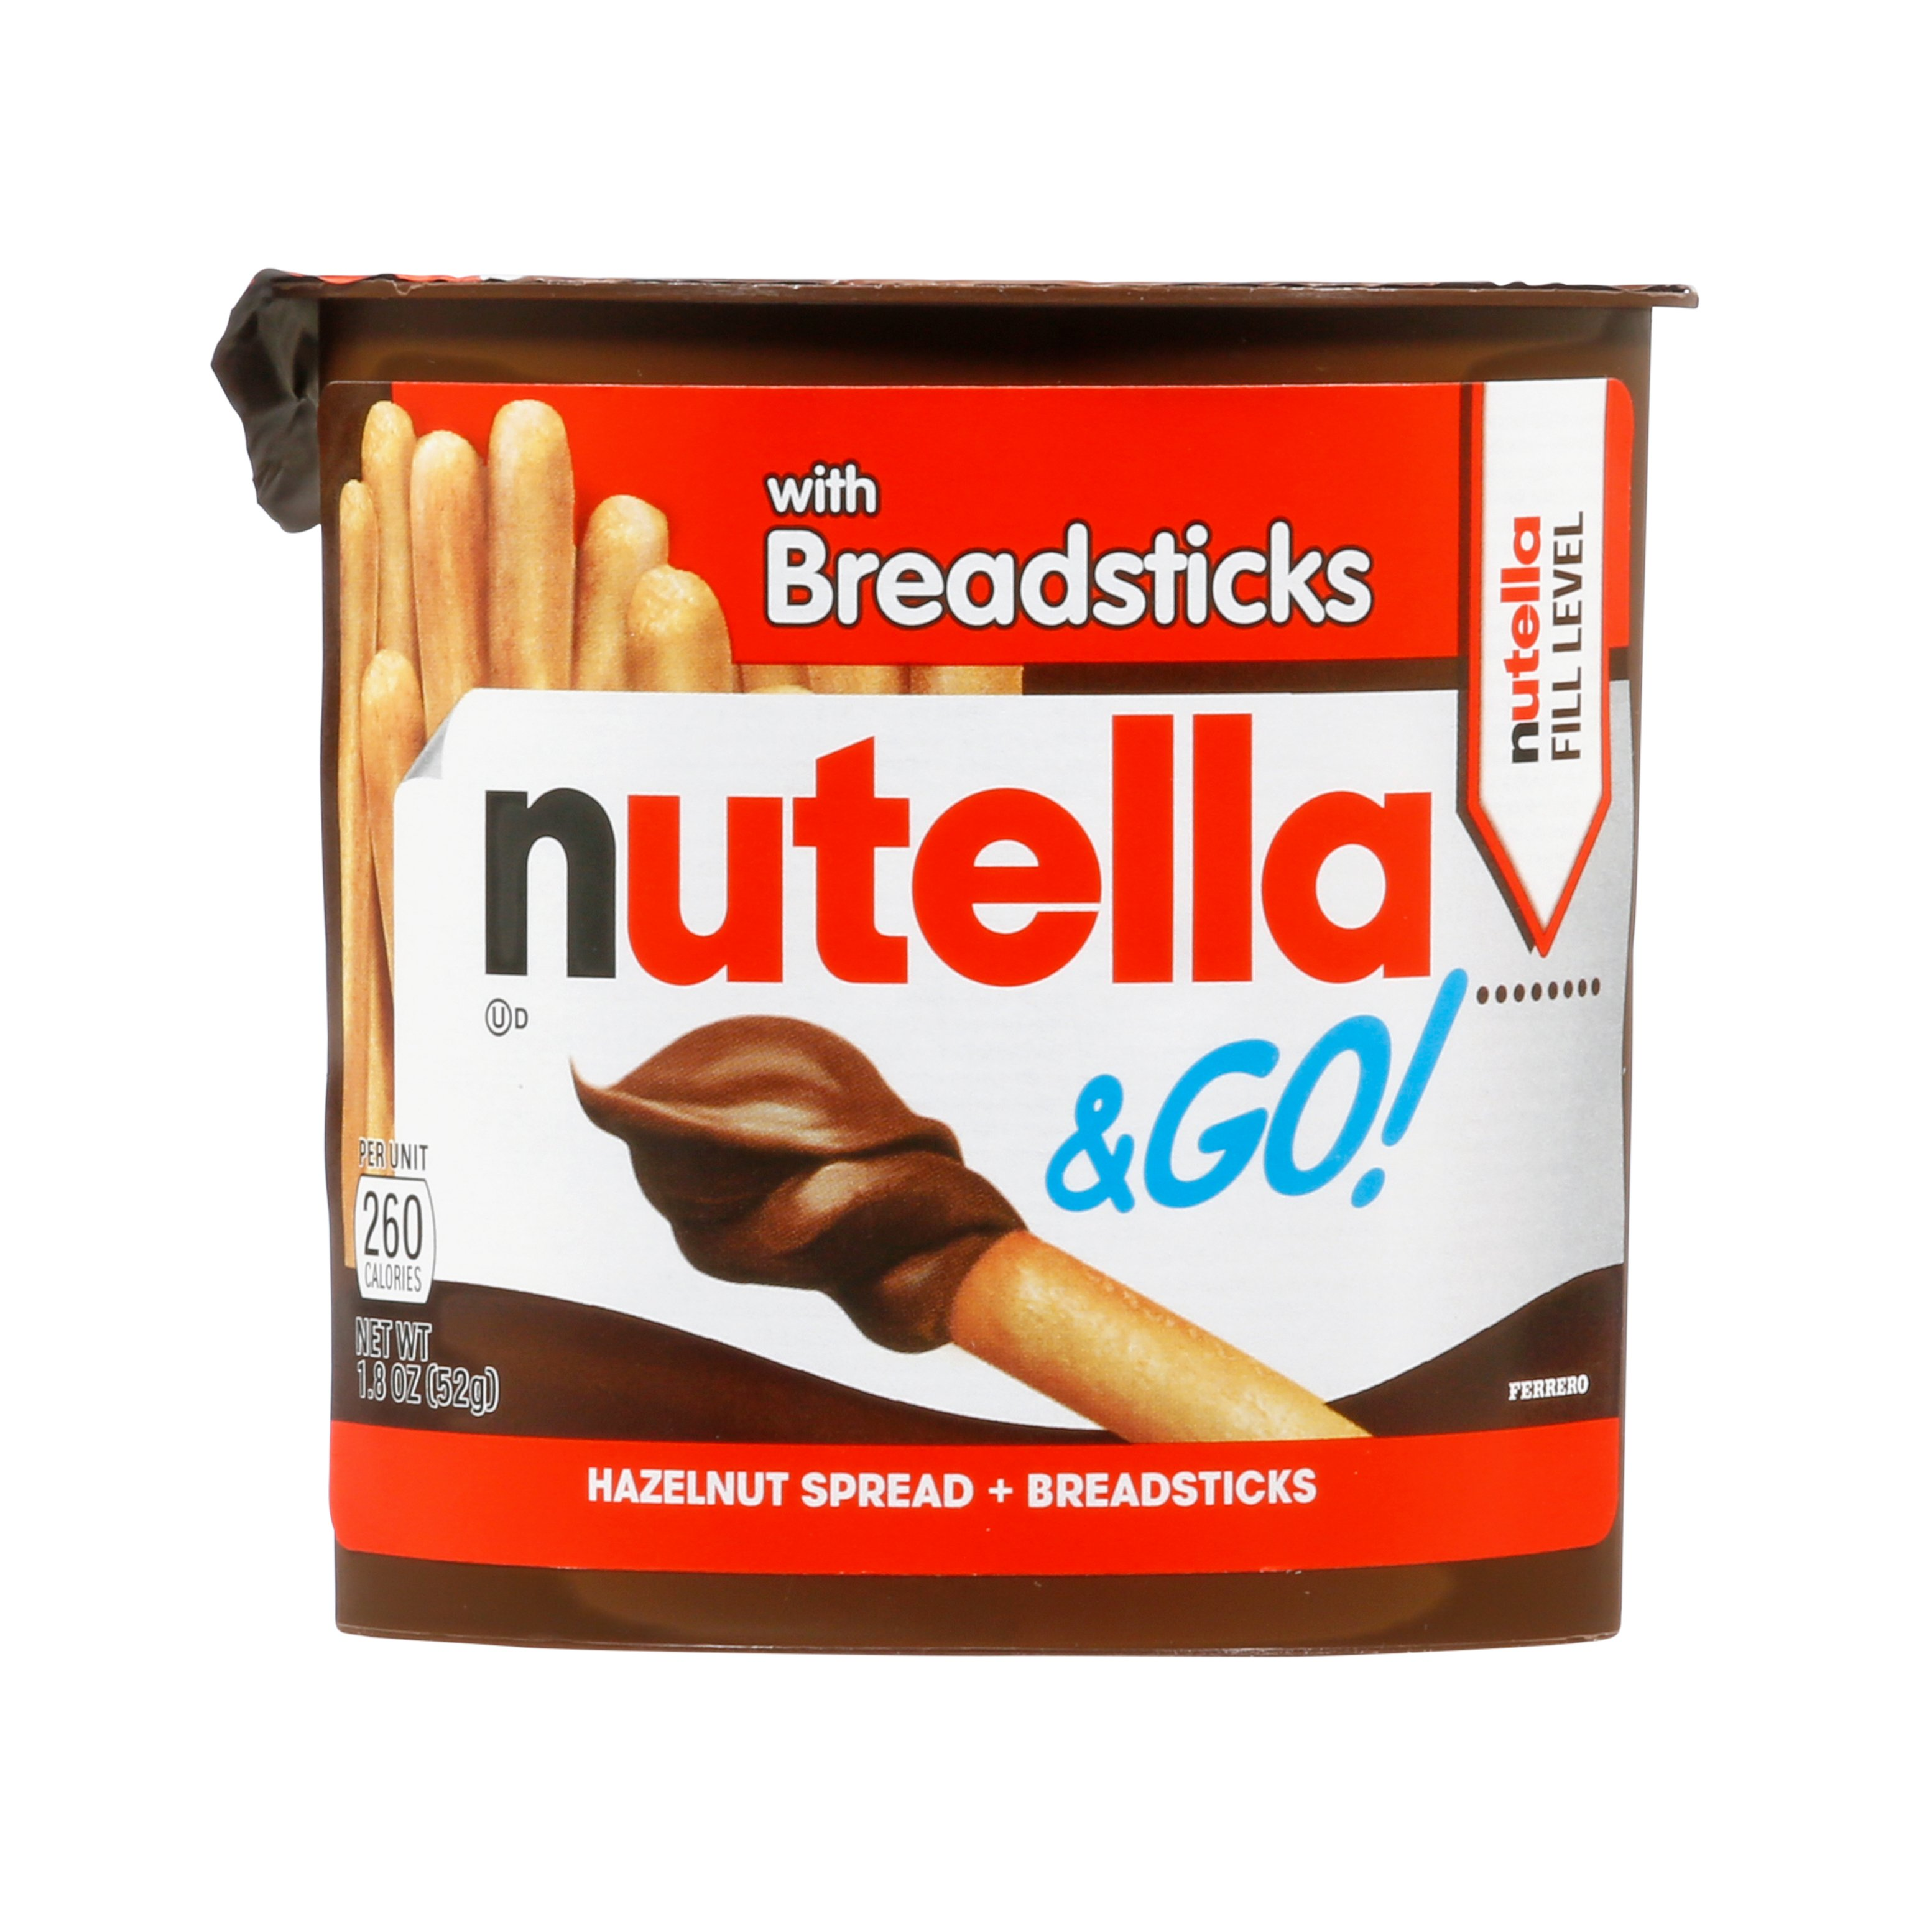 Connu Nutella & Go! Hazelnut Spread + Breadsticks - Shop Snack Bars at HEB MG92